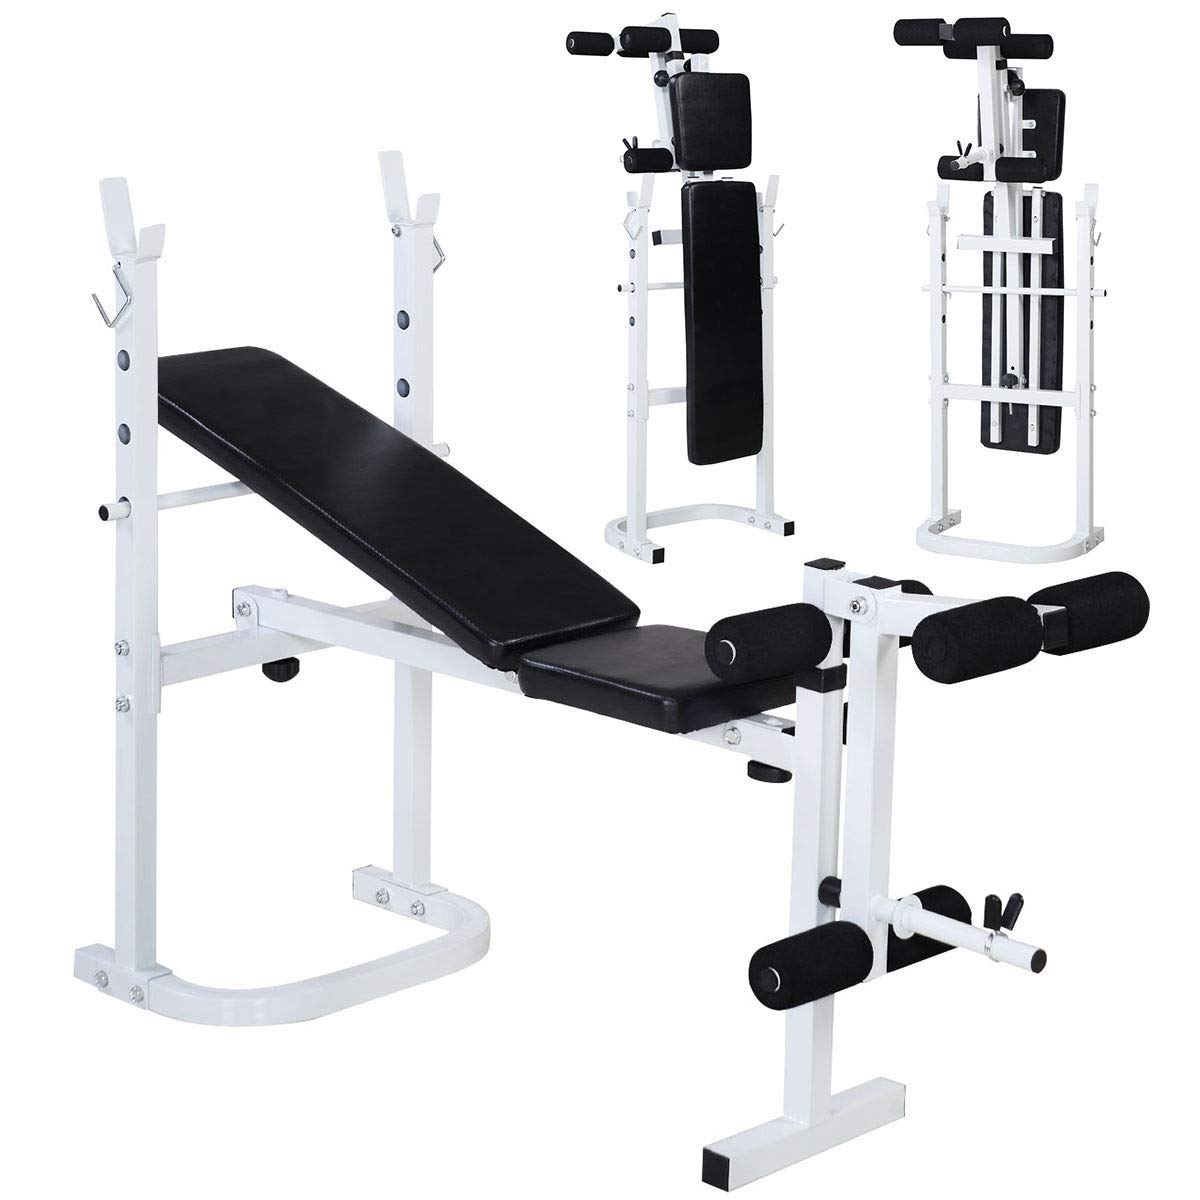 Cirocco Folding Weight Bench Press Incline Lift Leg Extension Workout Training | Heavy Duty Durable Upper Lower Body Exercise Ergonomic Comfortable Foldable Space Saving | for Home Gym Muscle Mass by Cirocco